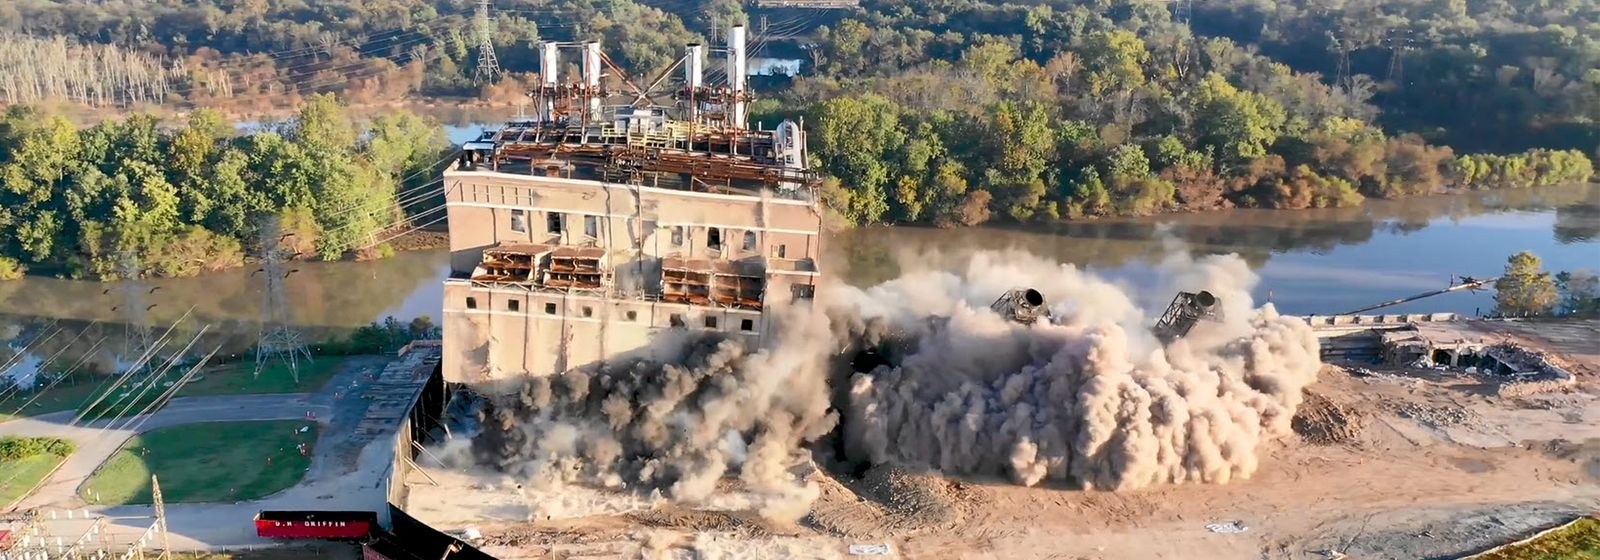 A televised farewell to a historic power plant